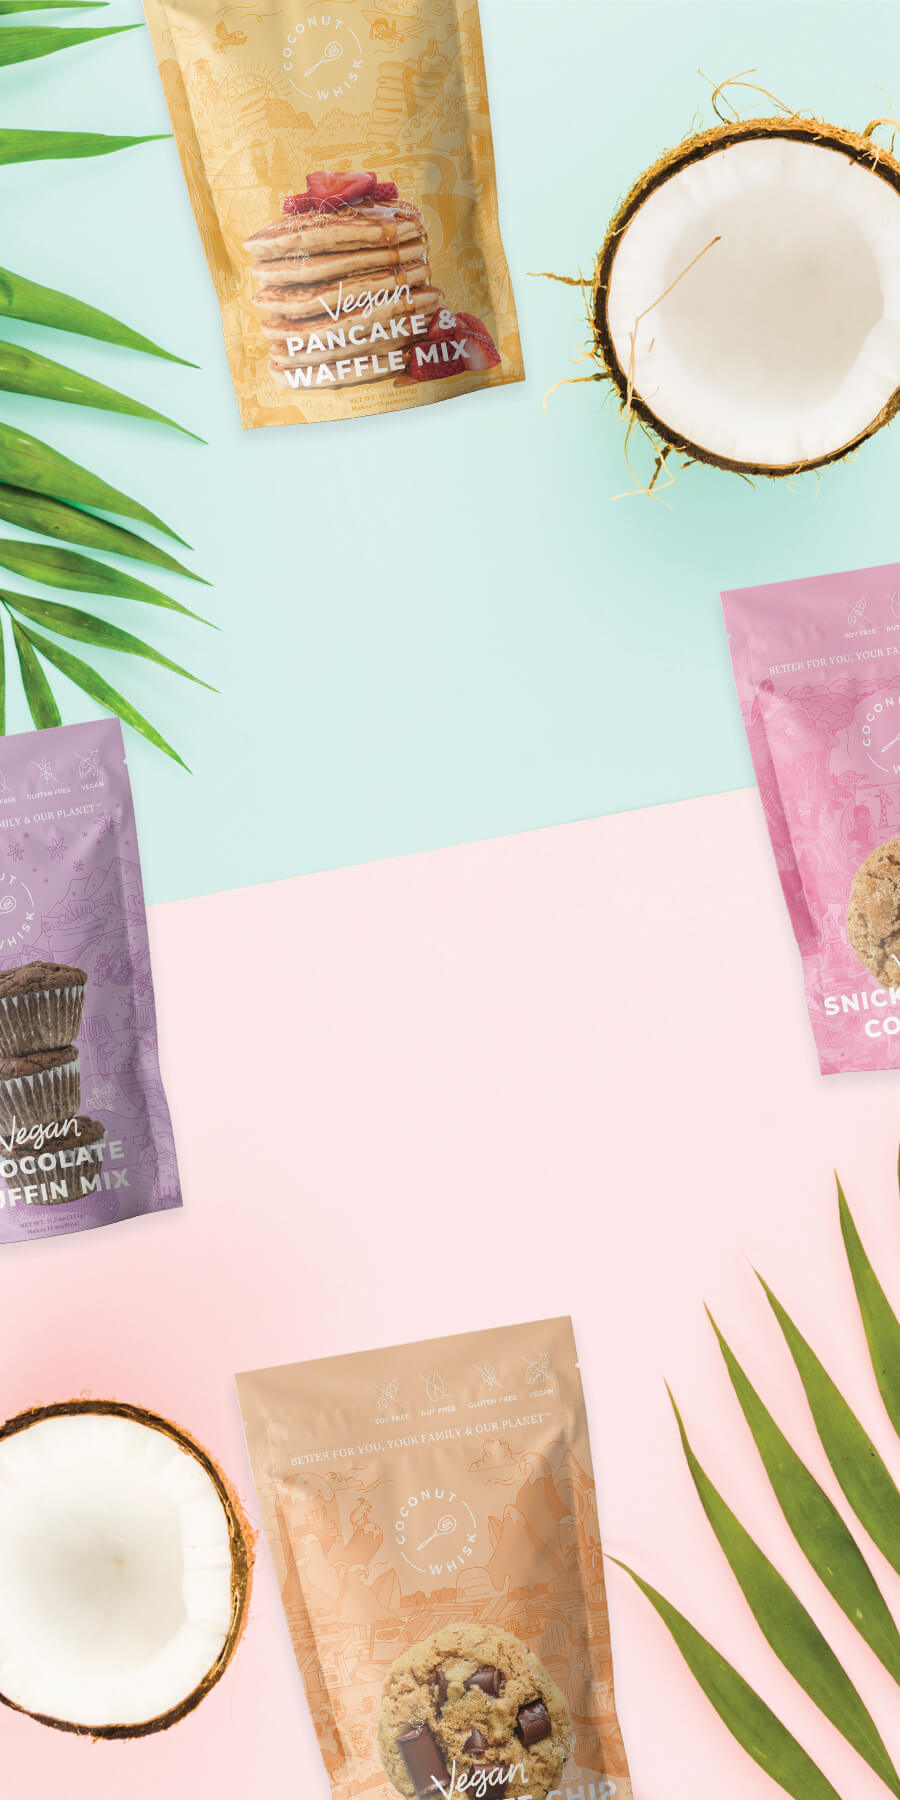 Vegan and gluten free baking mixes